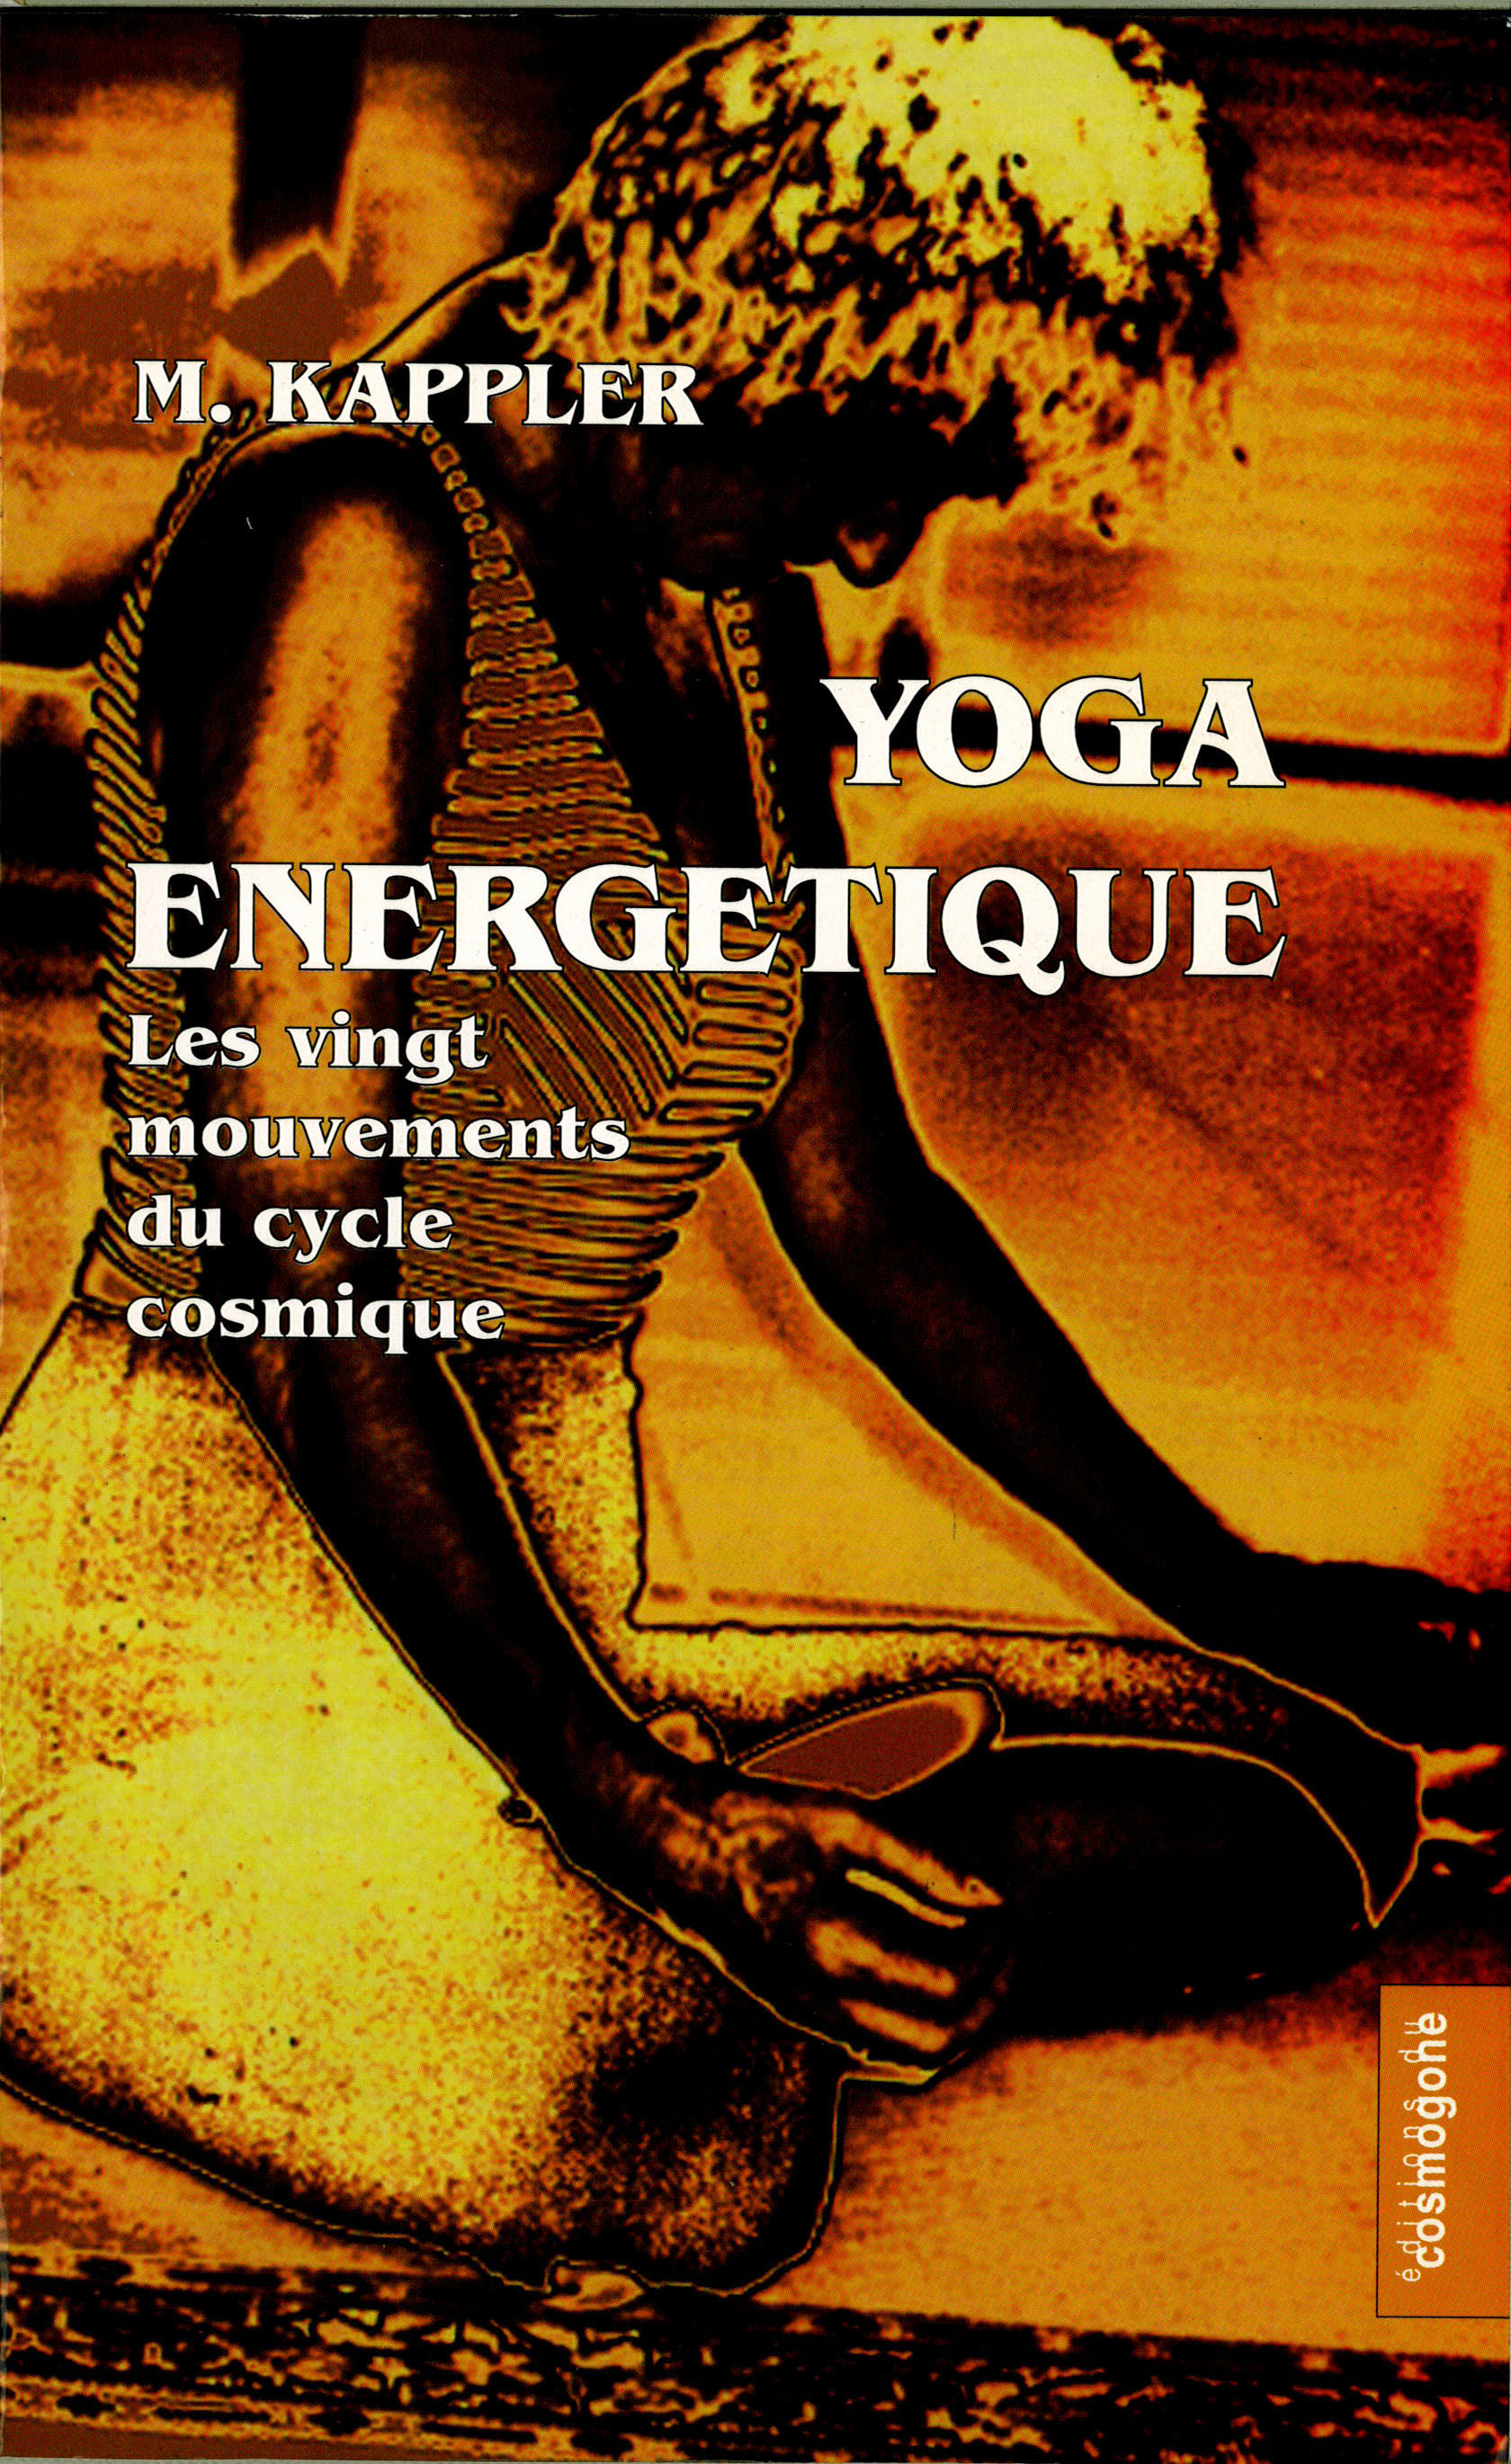 YOGA ENERGETIQUE